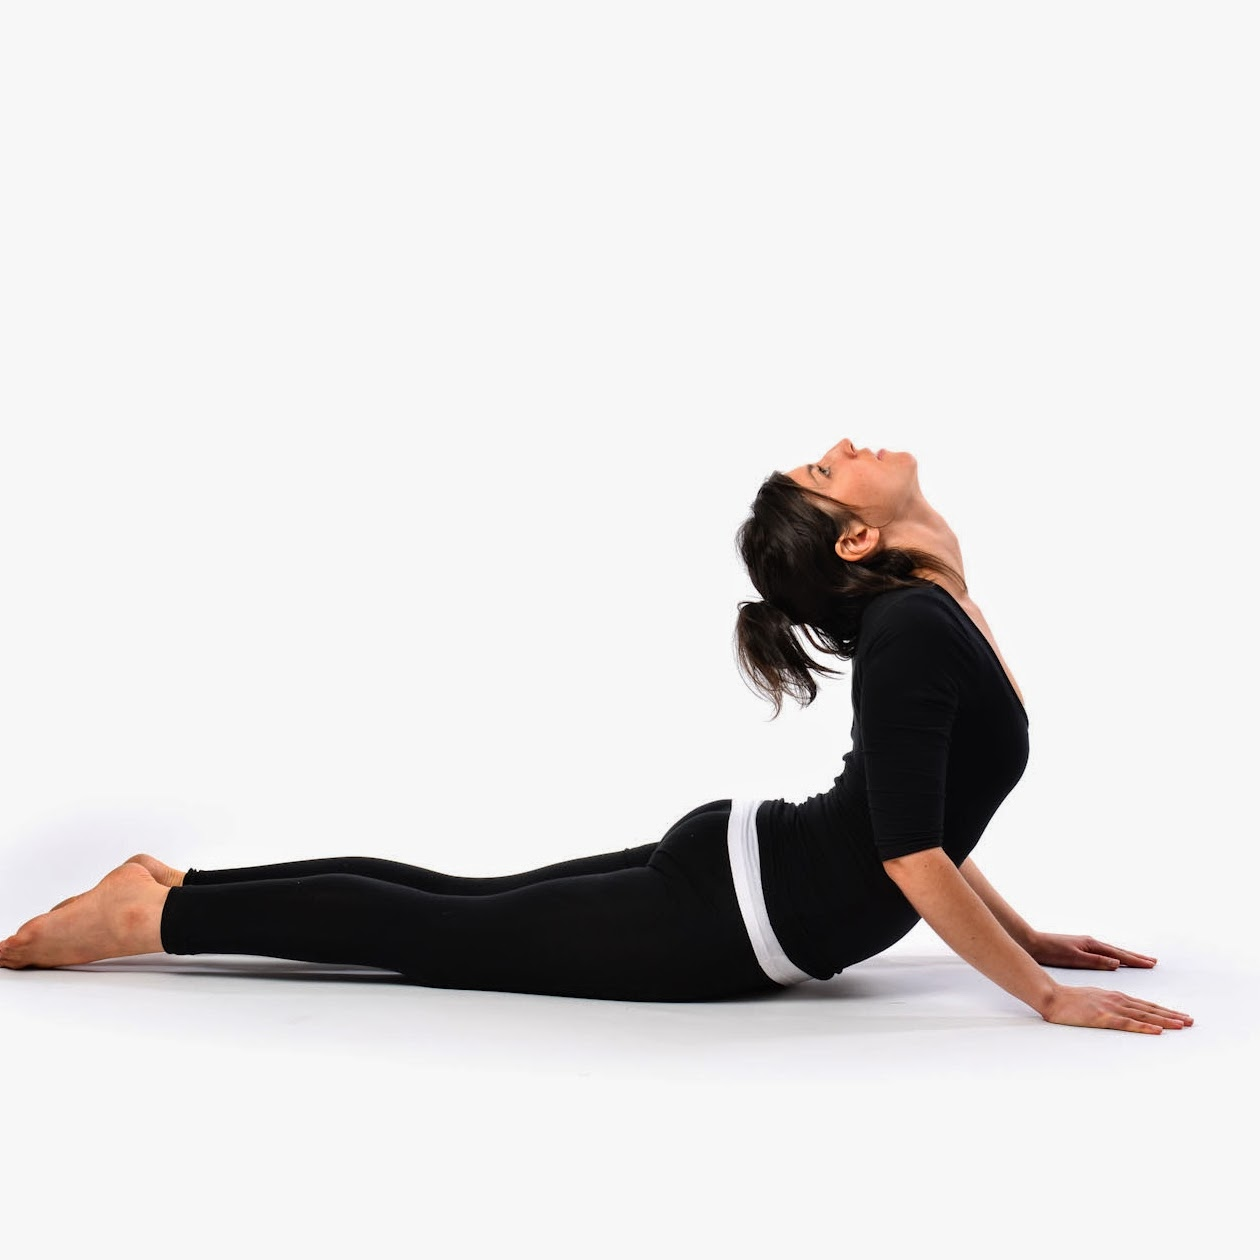 best yoga poses for lower back pain Jm5d6svJ